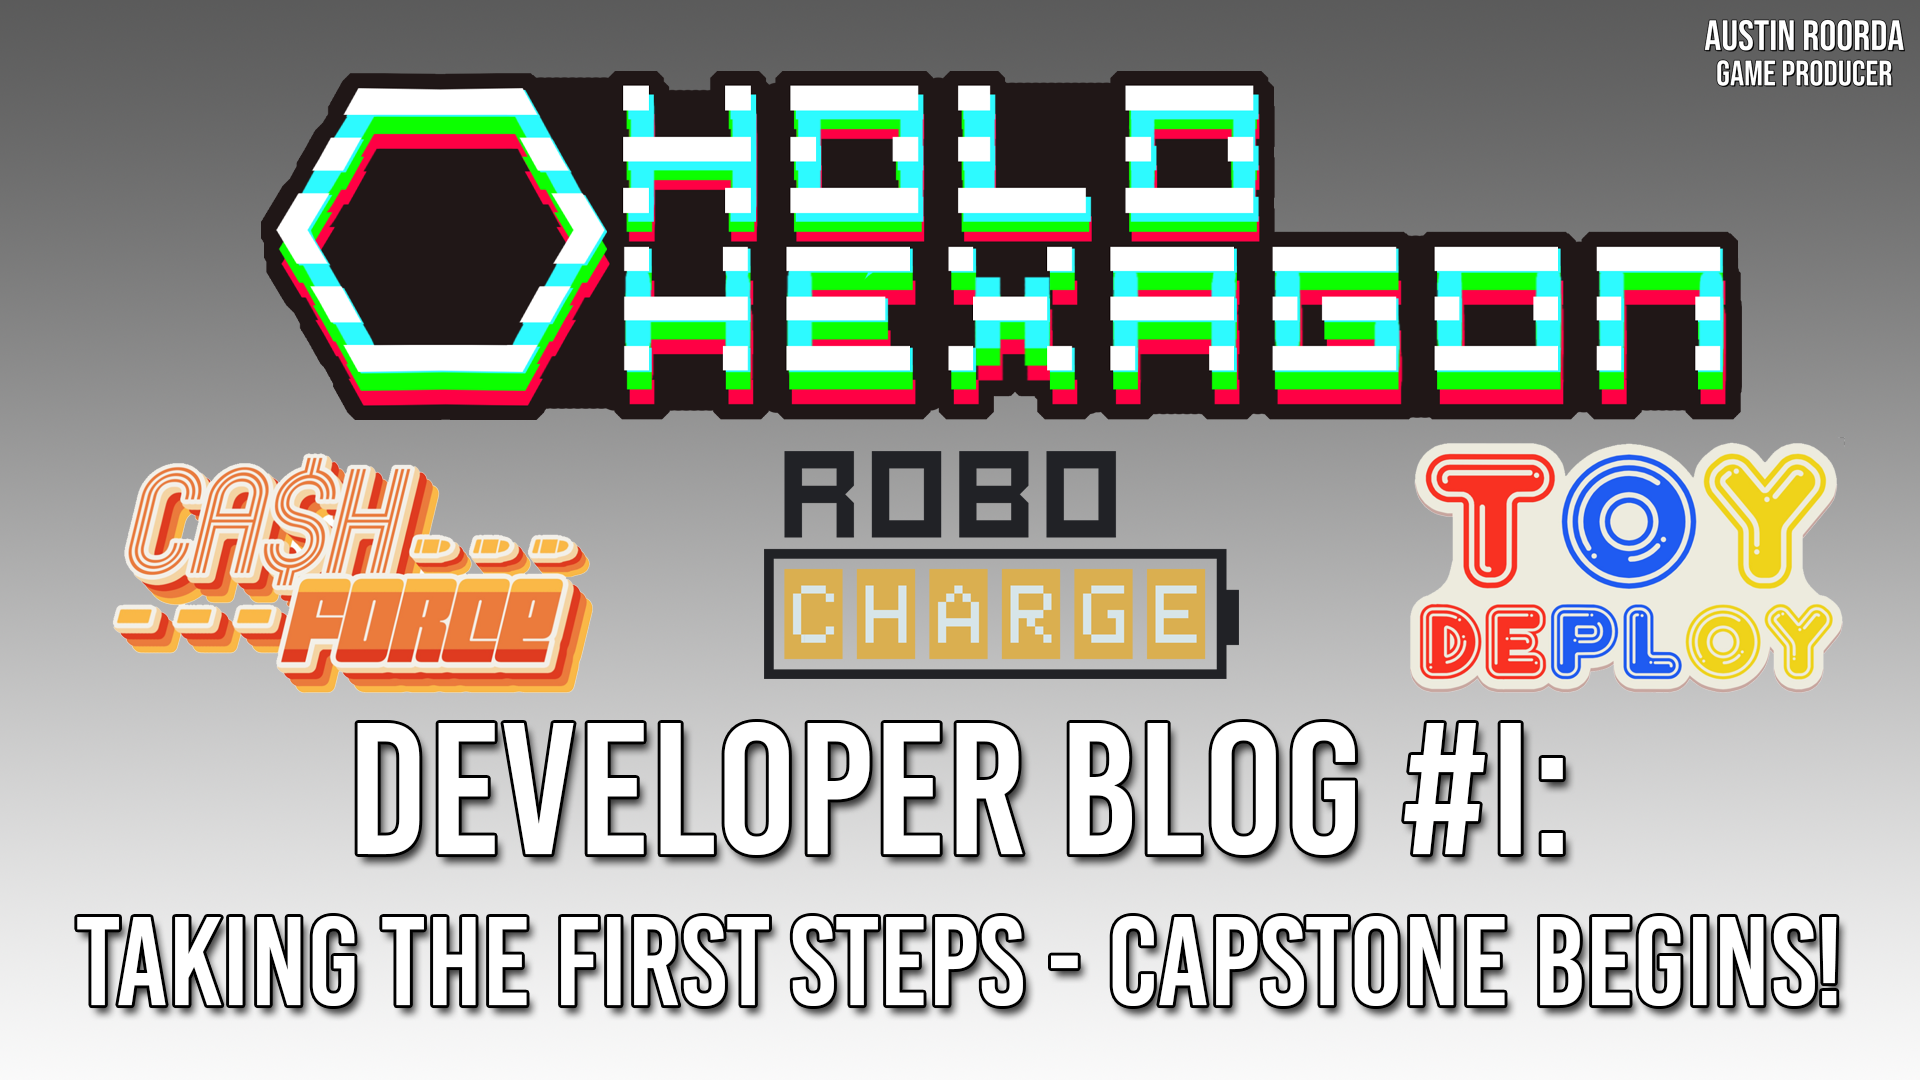 Development Blog #1: Taking the First Steps – Capstone Begins!